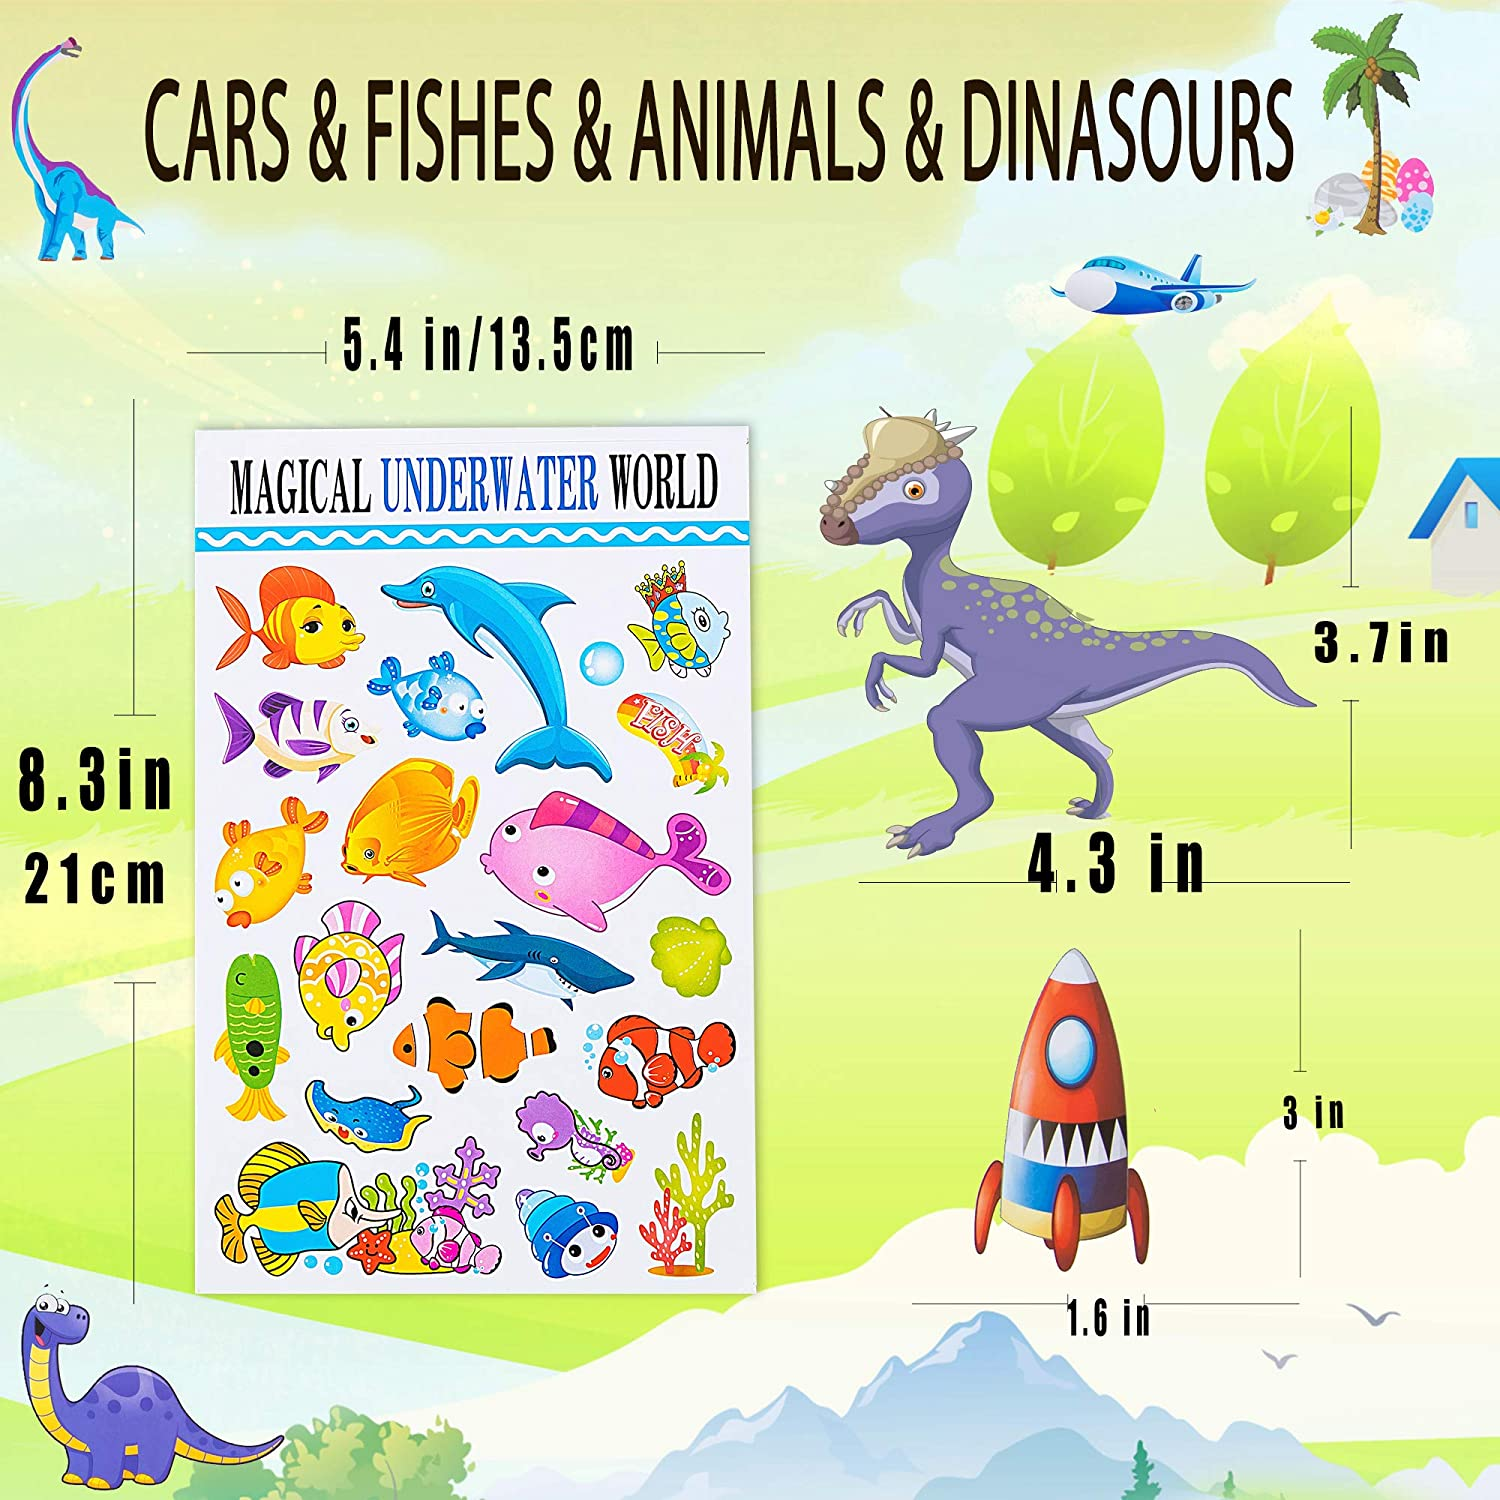 Teachers Stickers for Classroom and Planning 48 Sheets,Variety Sticker Assortment of animals 1000+ no repeat Zoo animal stickers assortment for toddlers fishes and cars dinosaurs kids 48 sheets